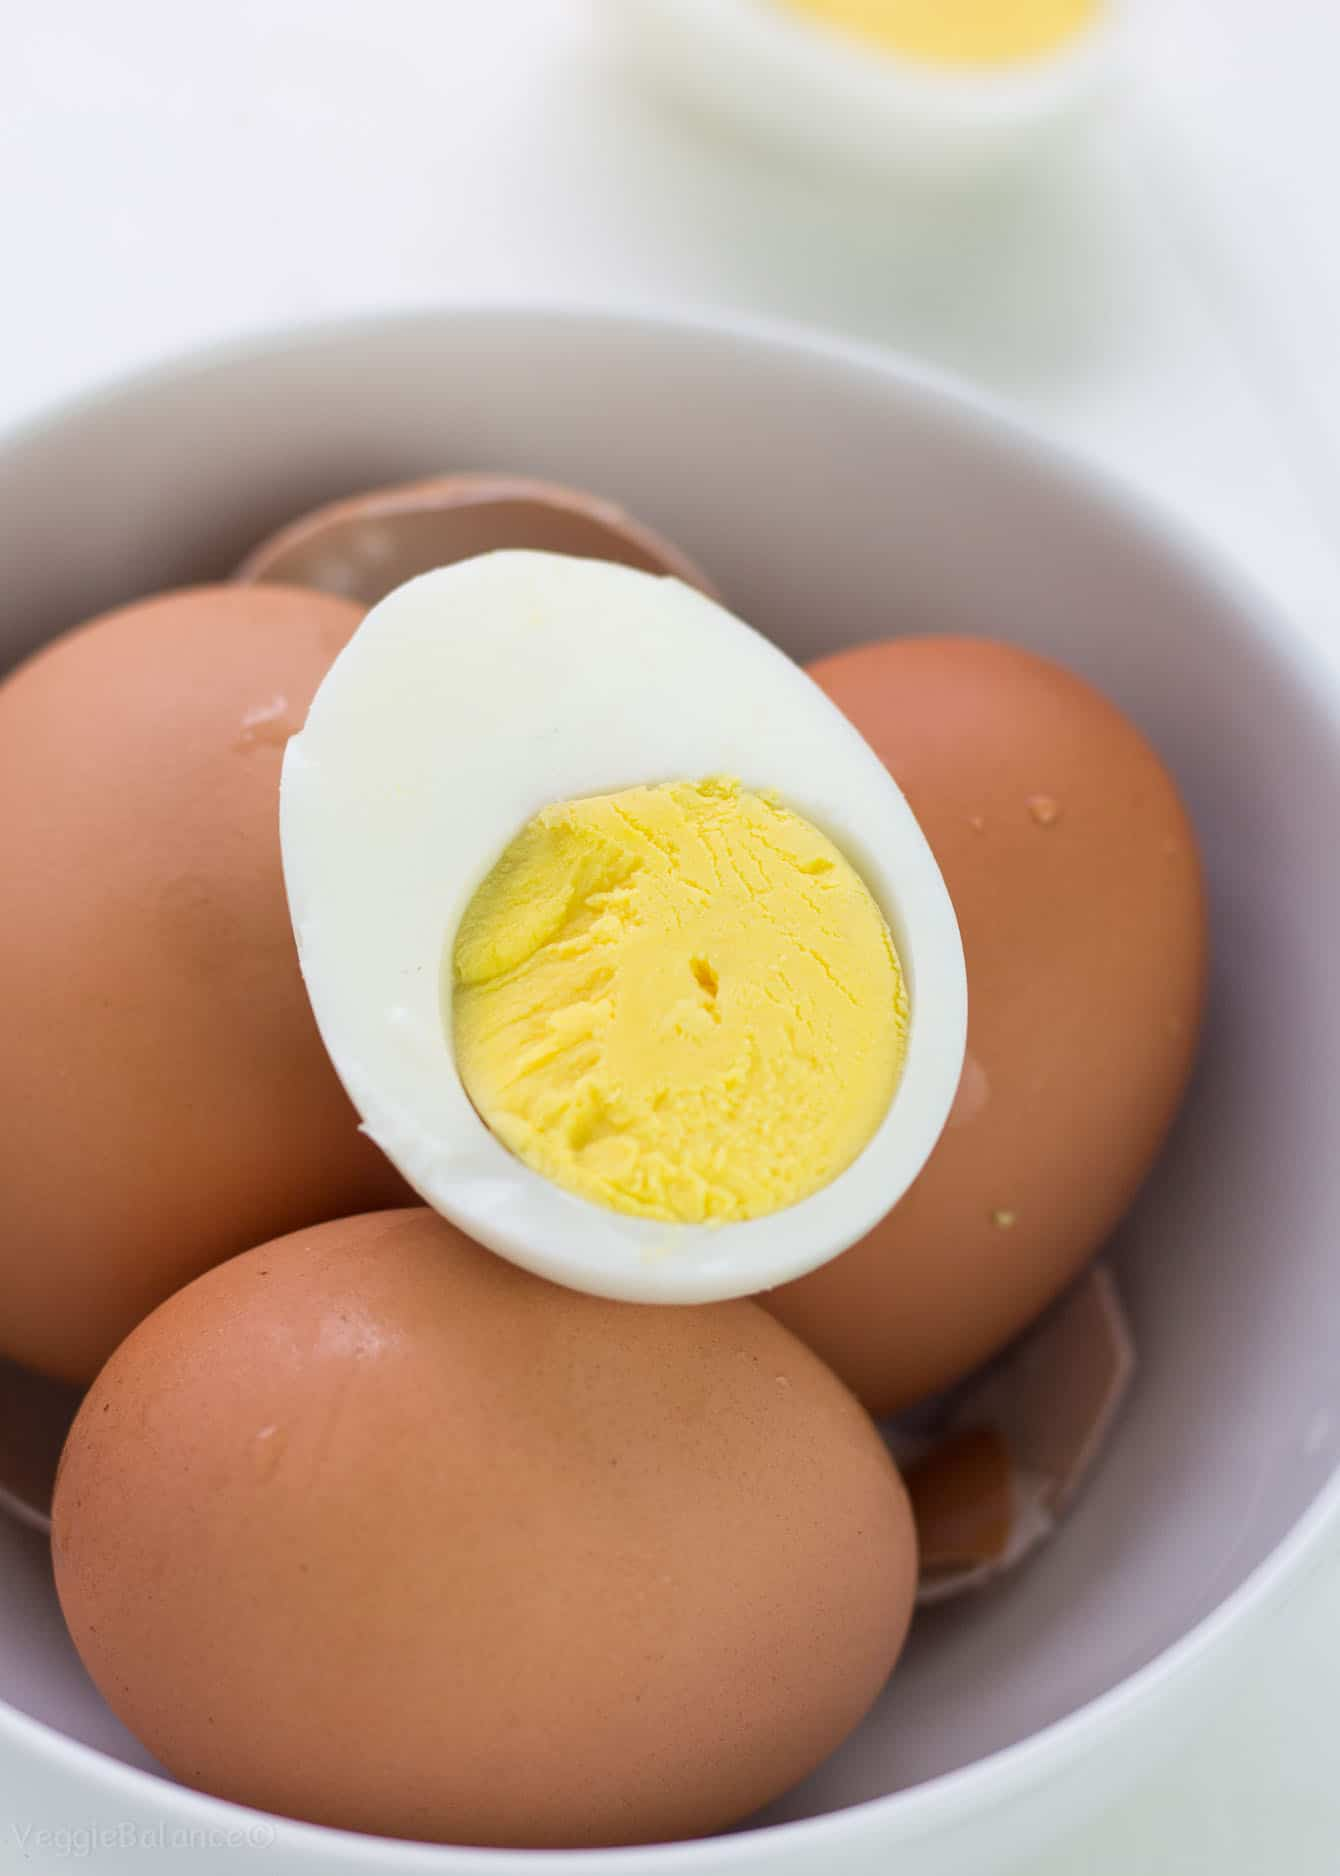 How to make hard boiled eggs peel easier